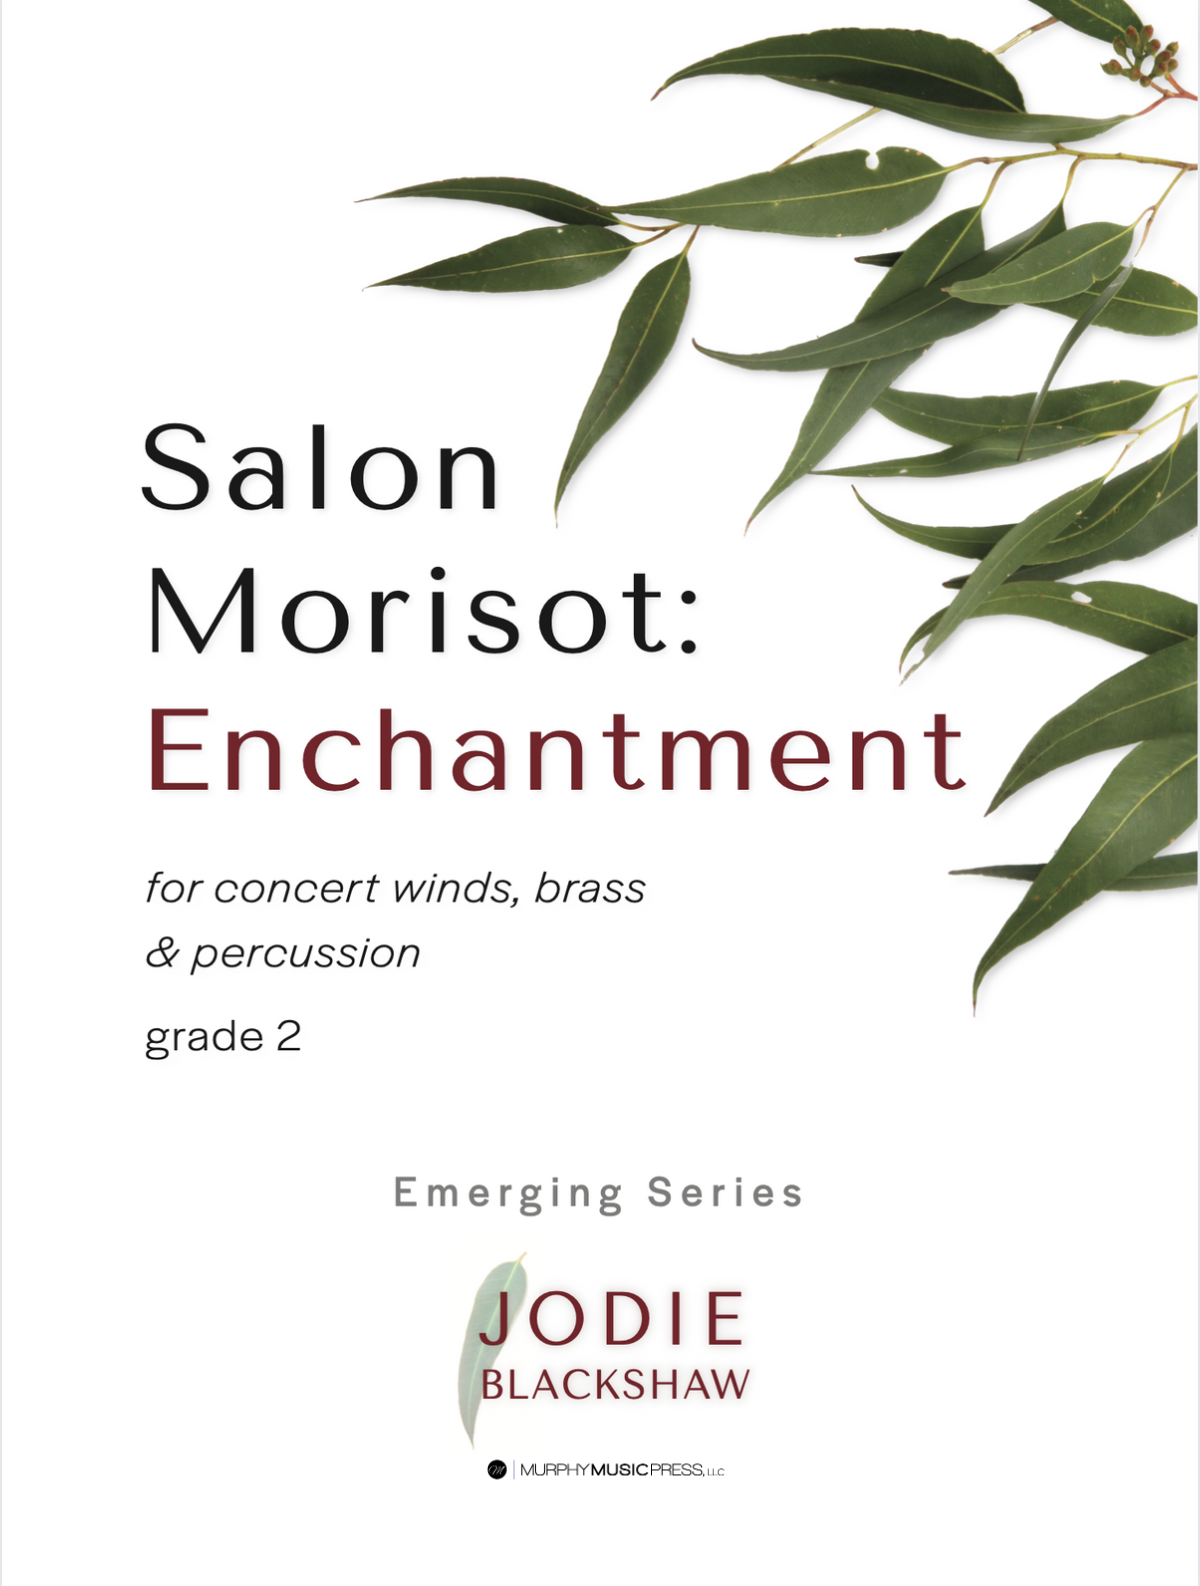 Enchantment by Jodie Blackshaw